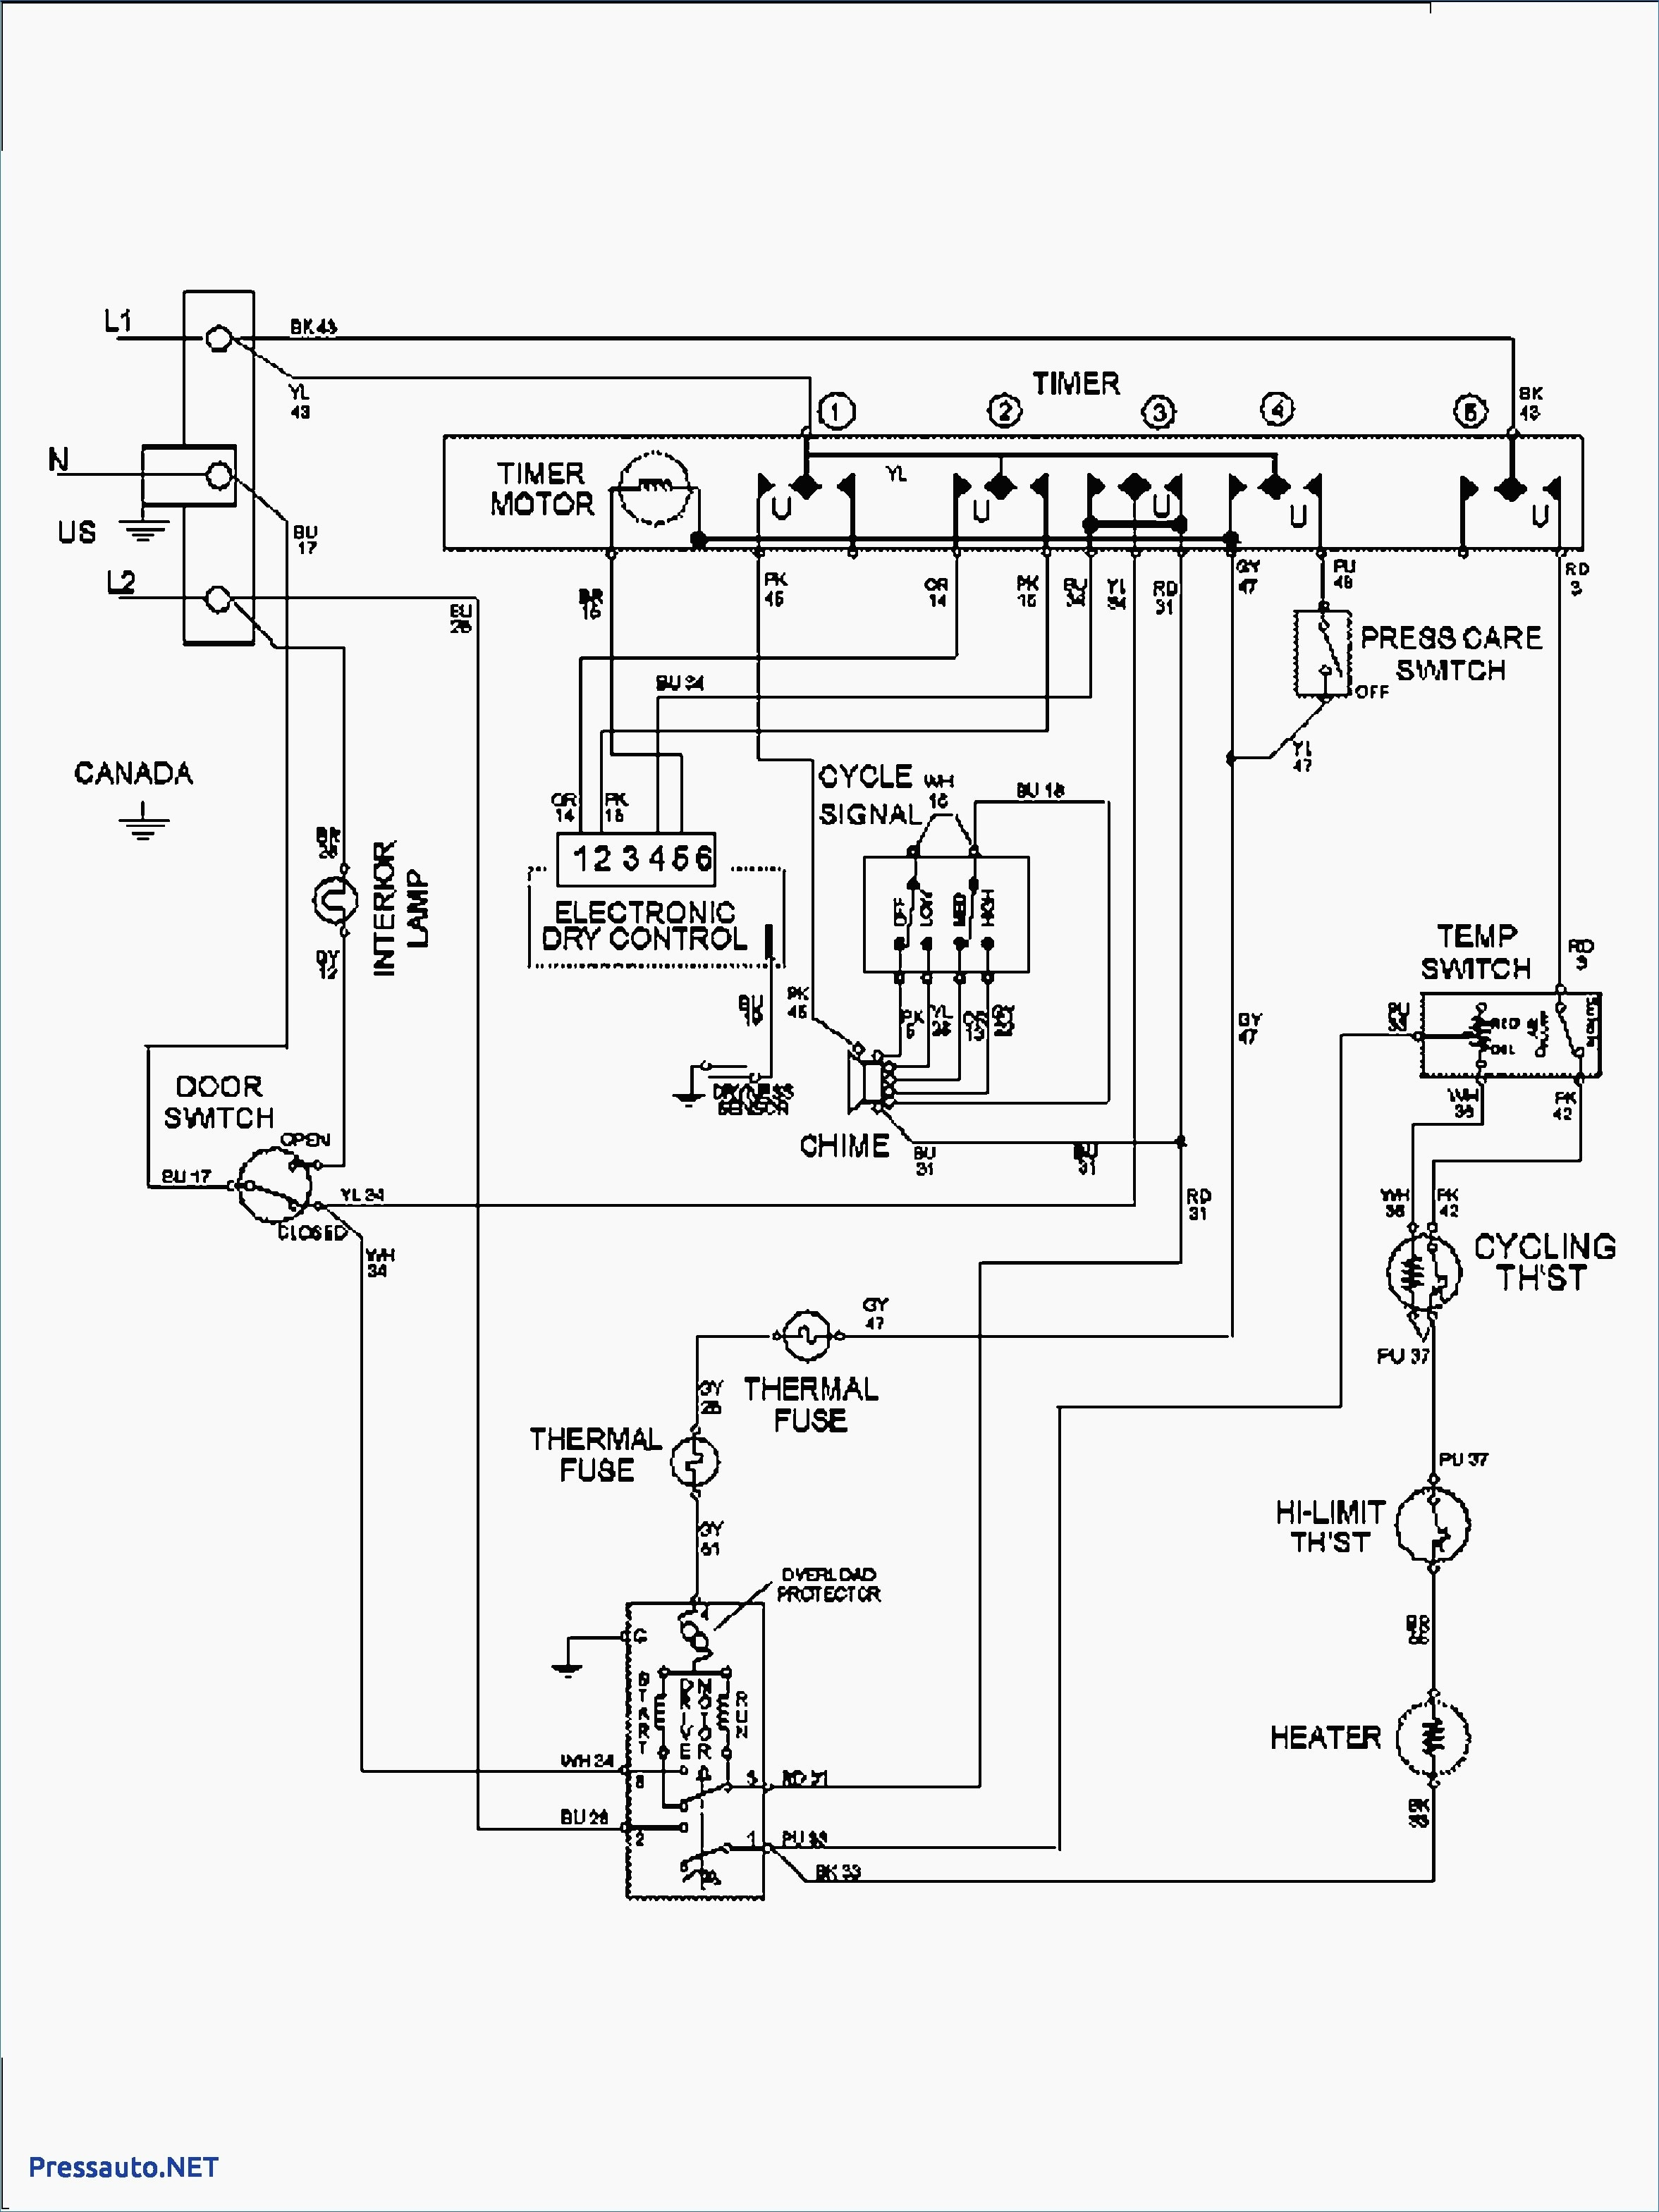 Wiring Diagram For Estate Dryer